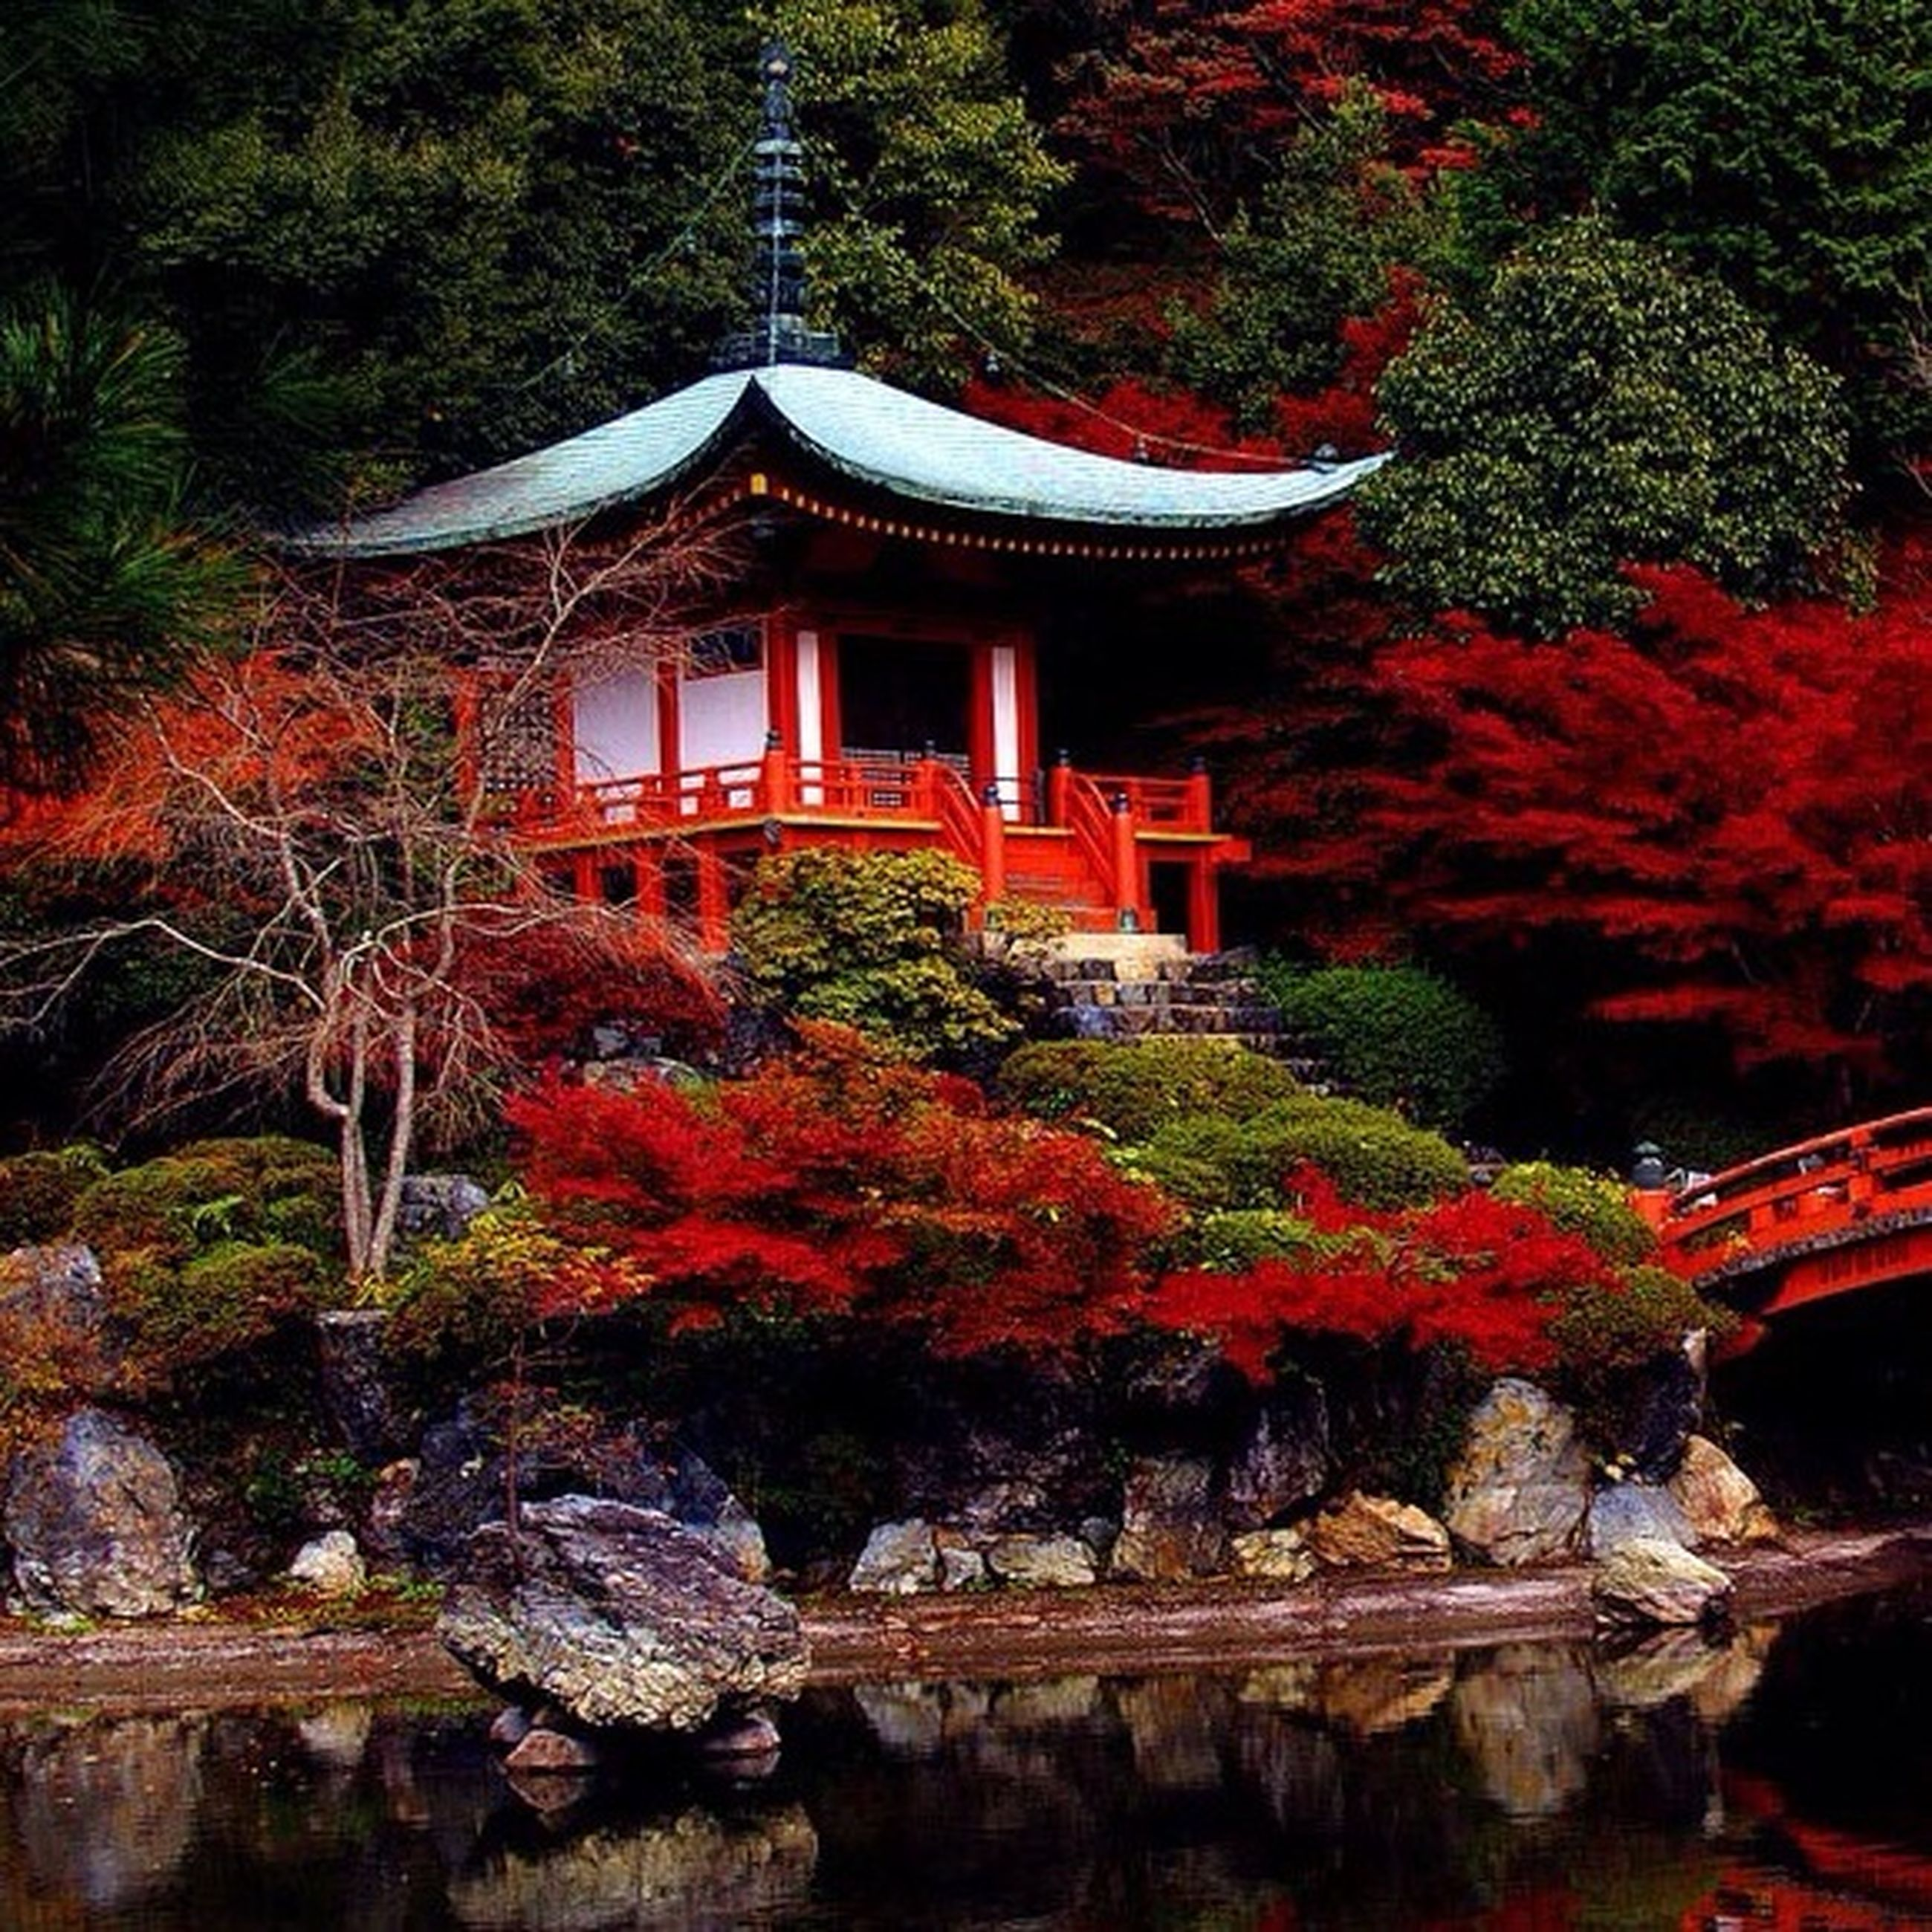 tree, built structure, architecture, building exterior, red, place of worship, temple - building, religion, growth, house, spirituality, nature, day, outdoors, autumn, plant, tradition, culture, beauty in nature